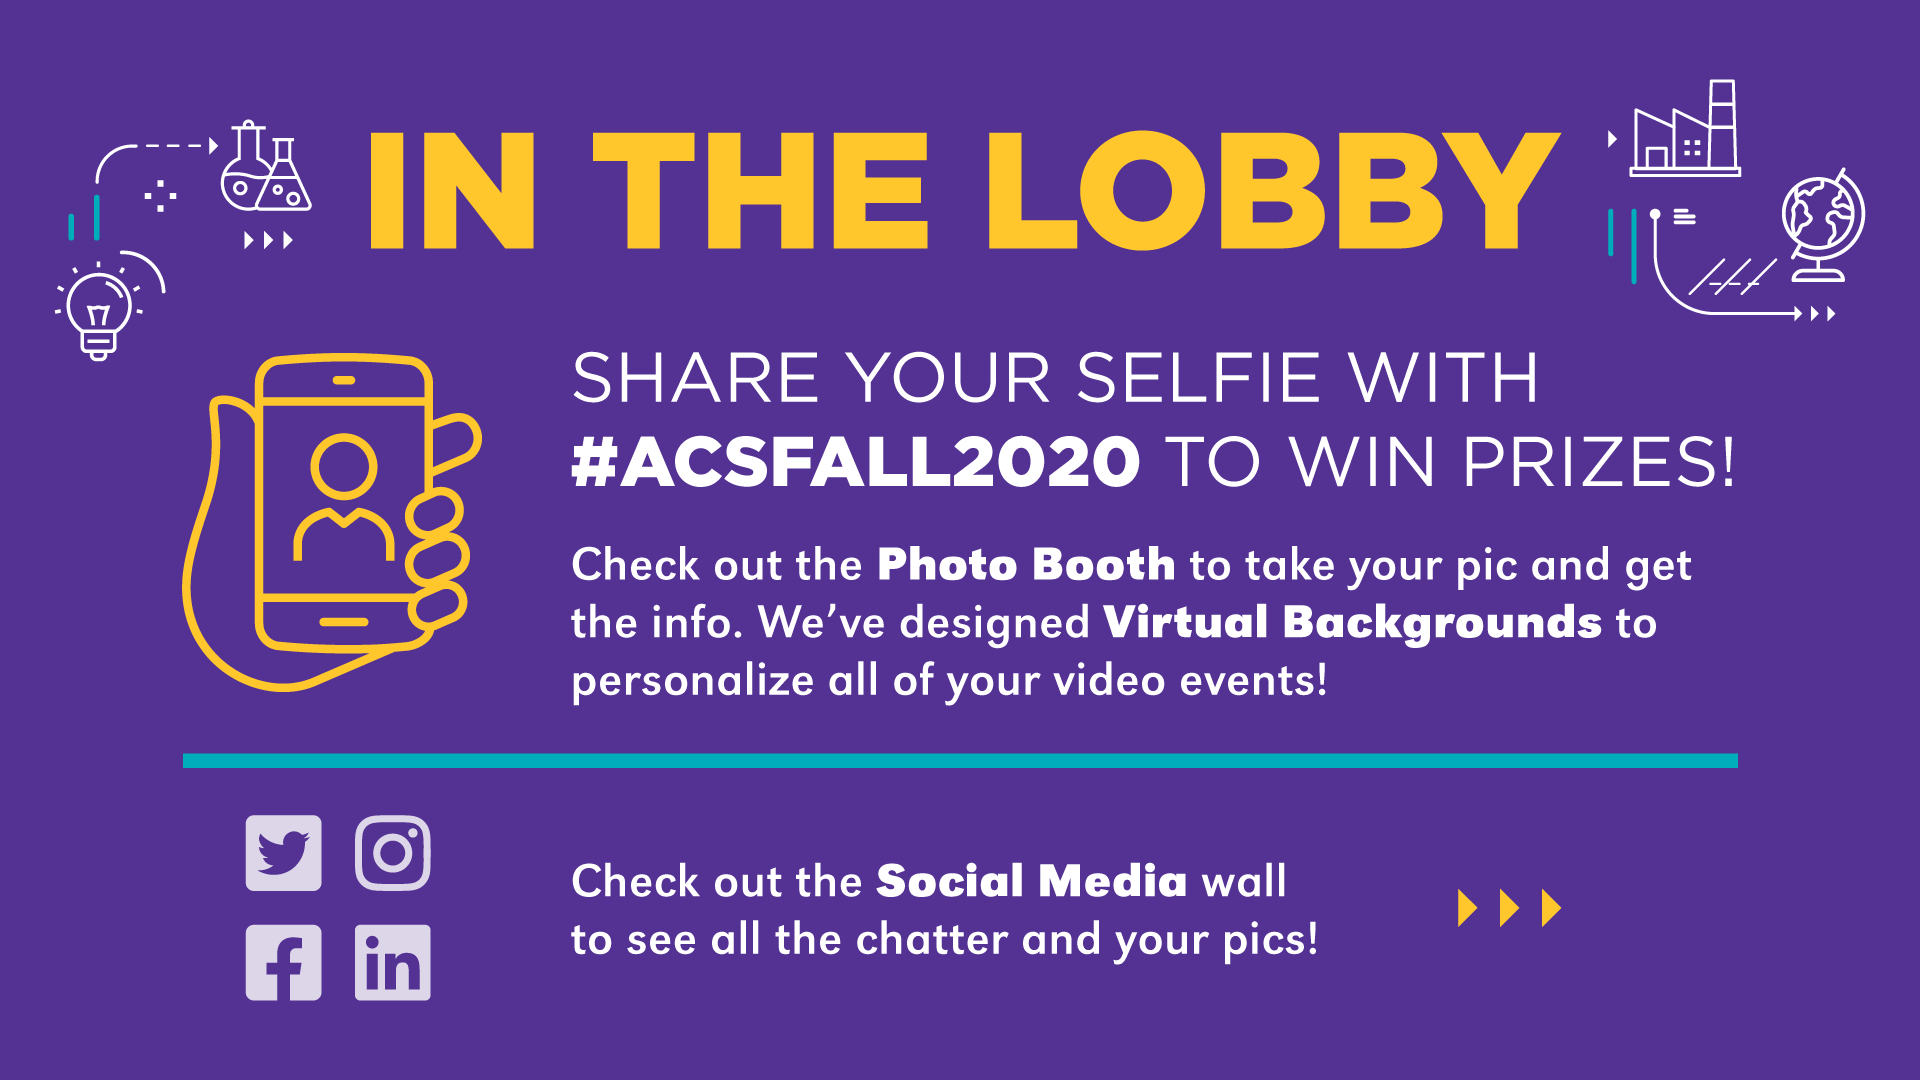 The ACS Meeting ran an online competition awarding prizes to the best selfies taken from the virtual photo booth. This virtual signage instructs attendees how to participate.